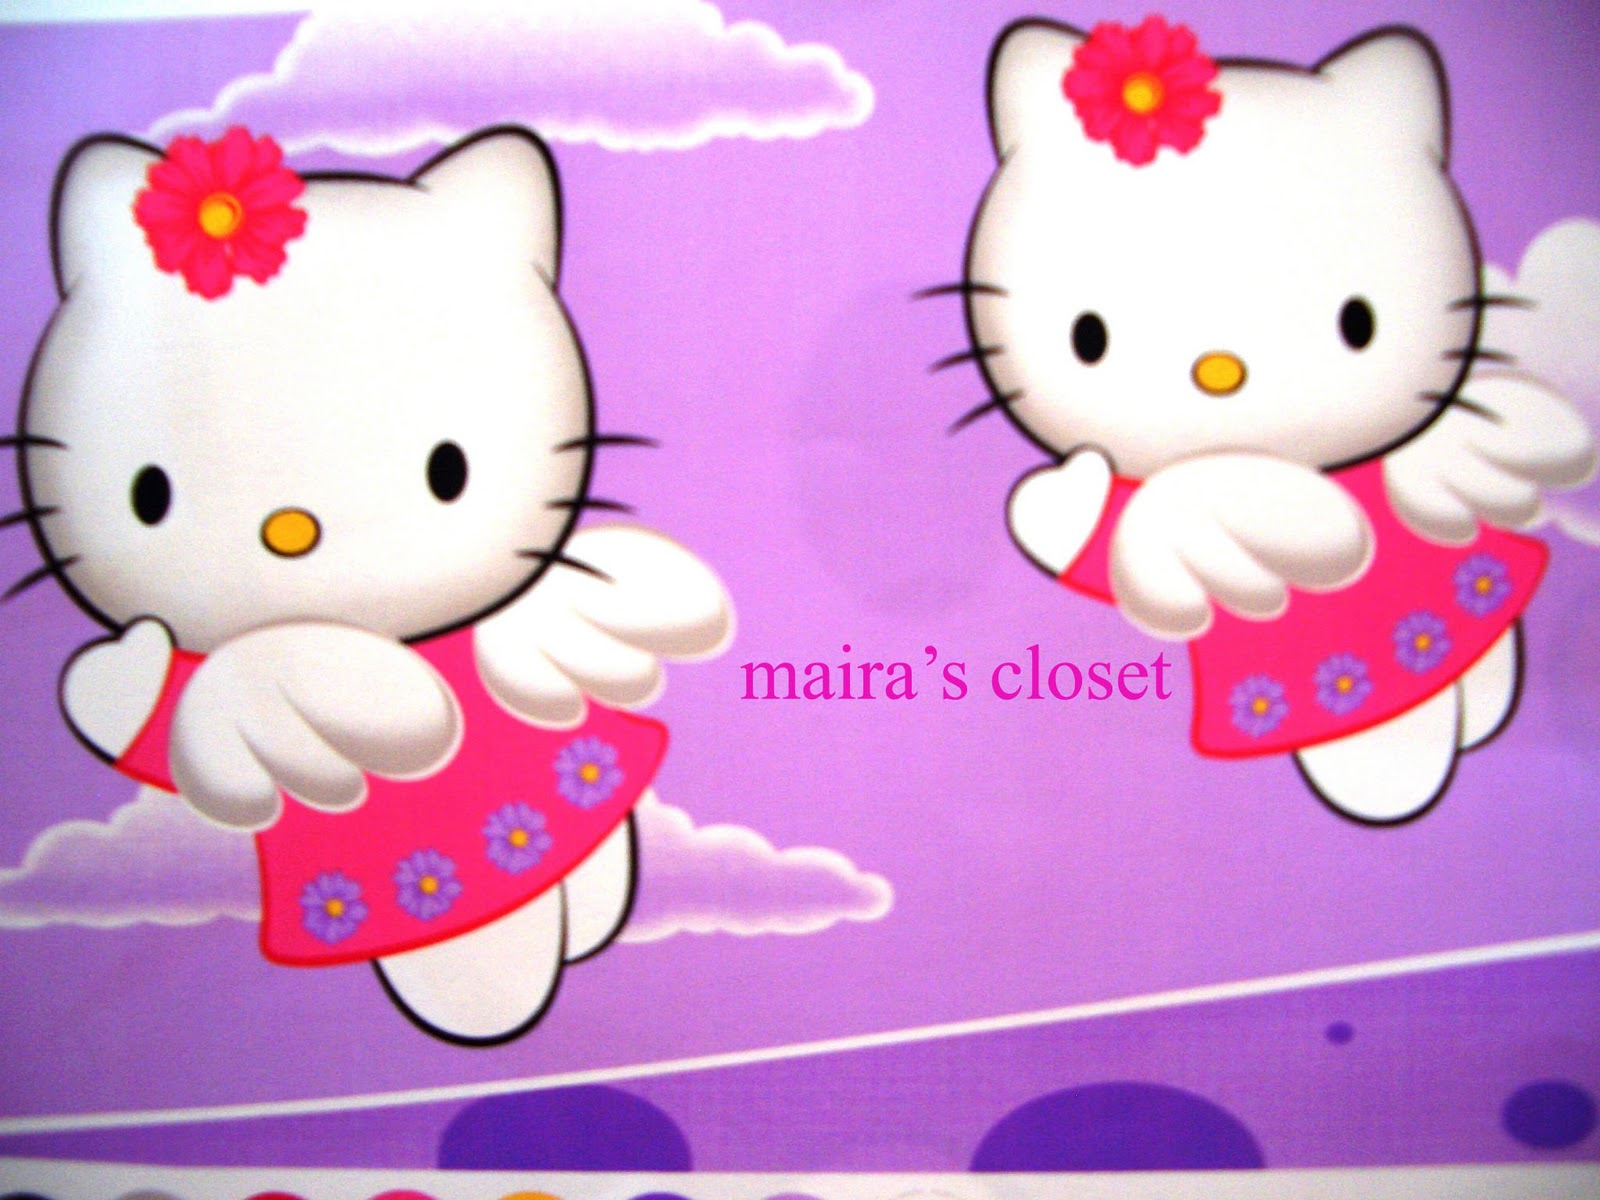 download+gambar+hello+kitty+ungu.jpg